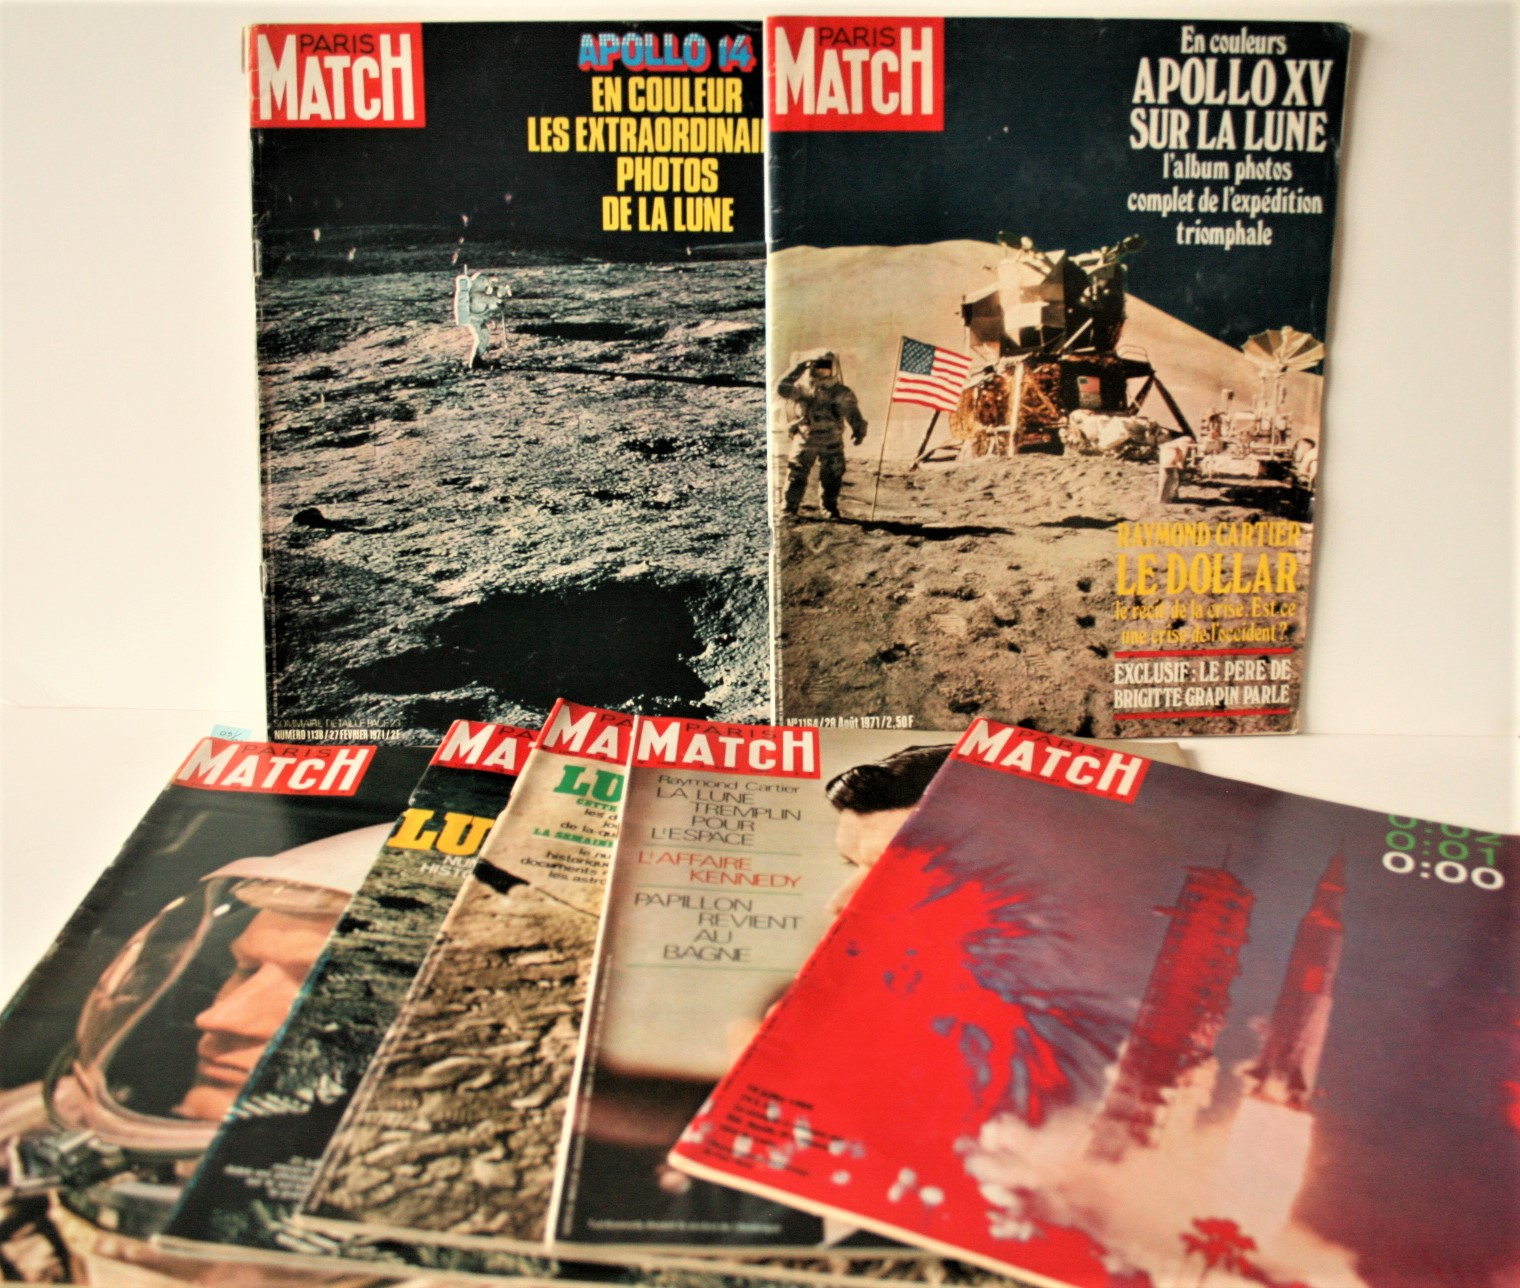 Lot 1 - Ensemble de 5 magazines PARIS-MATCH parus durant la mission APOLLO XI, du 19 juillet [...]